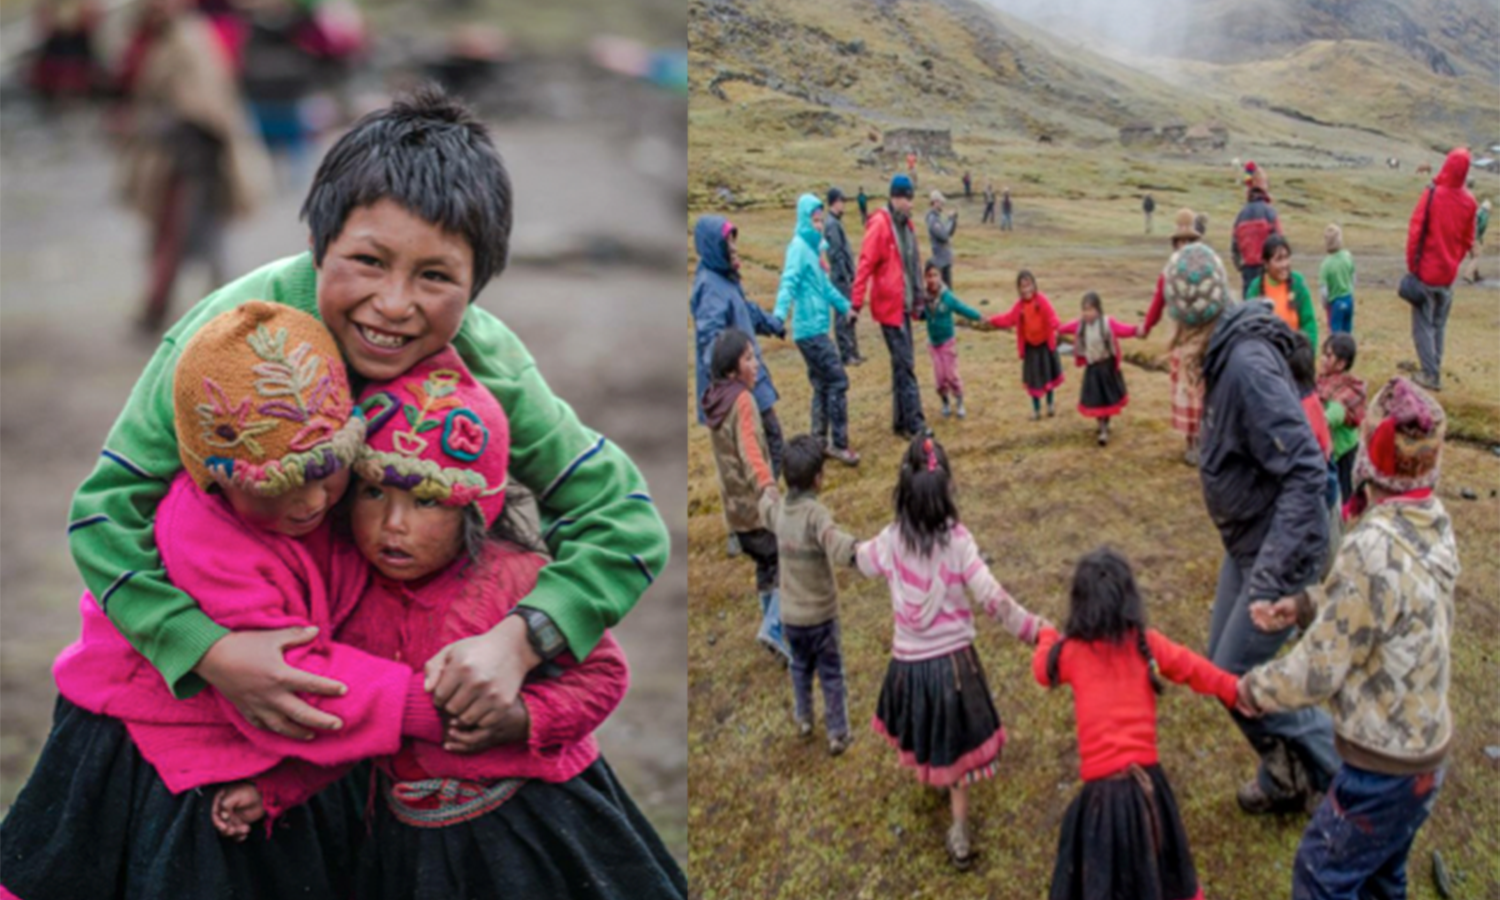 Images of group of hikers dancing with small children.